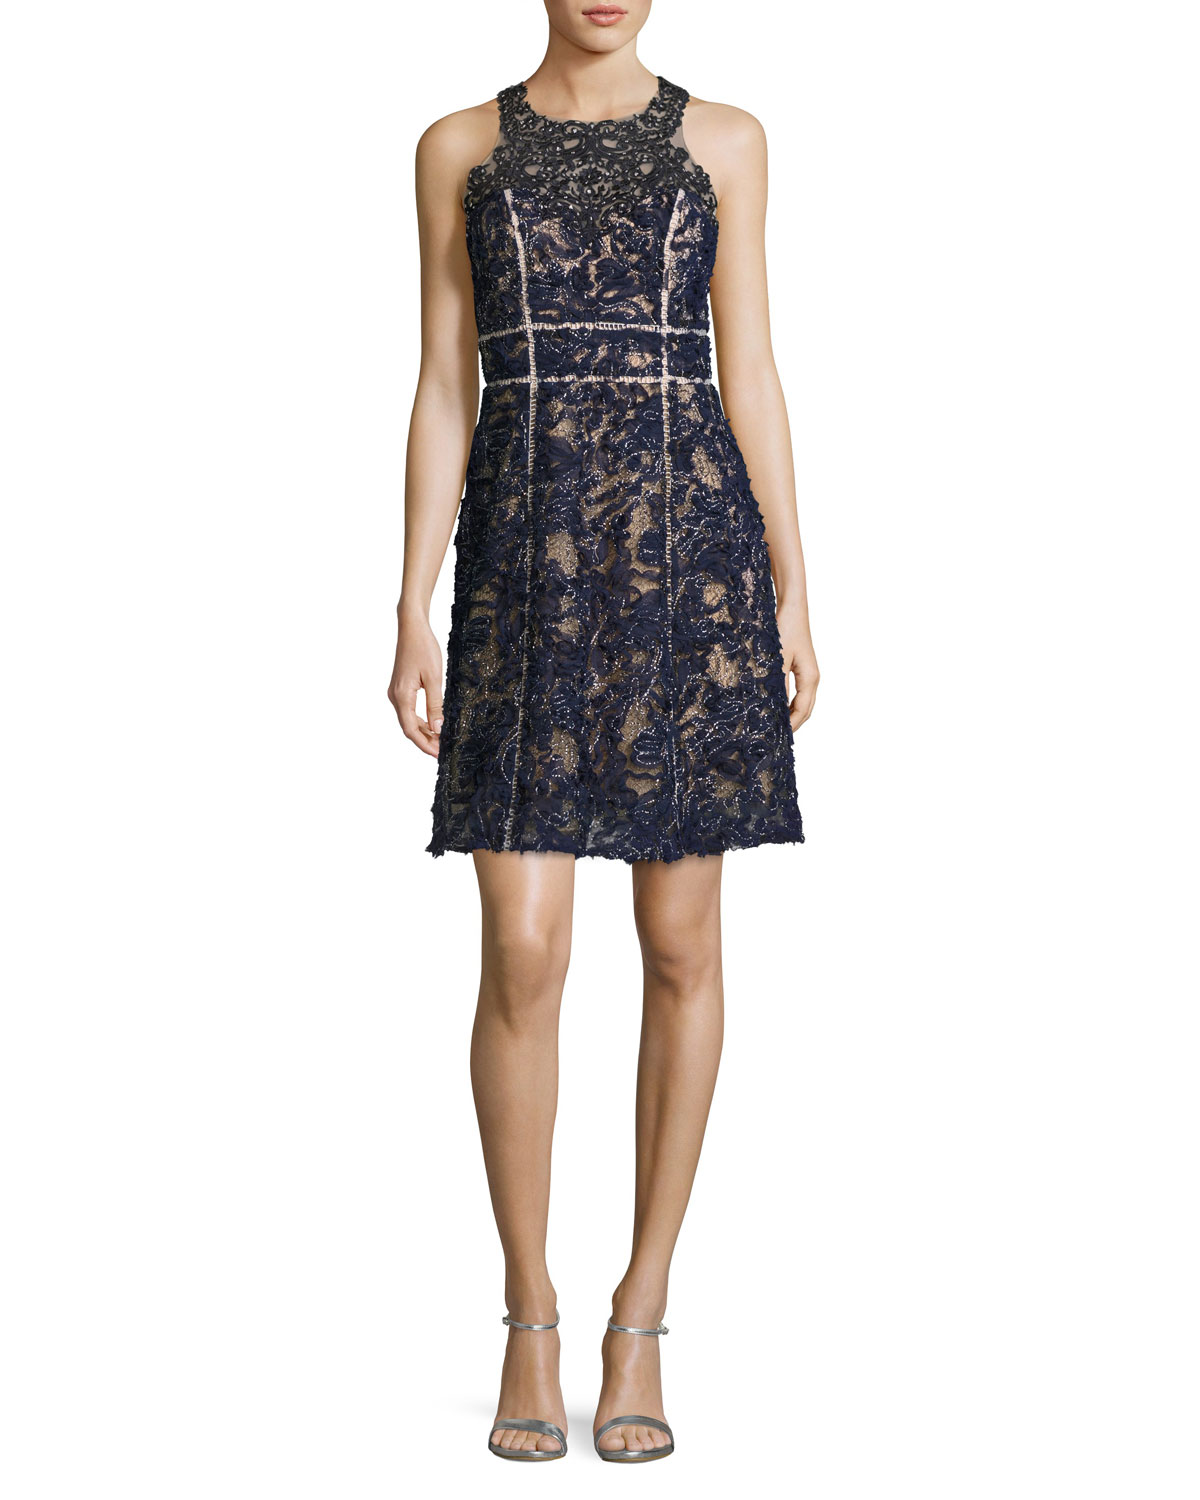 Marchesa Notte Sleeveless Beaded Lace Cocktail Dress def41c15e818